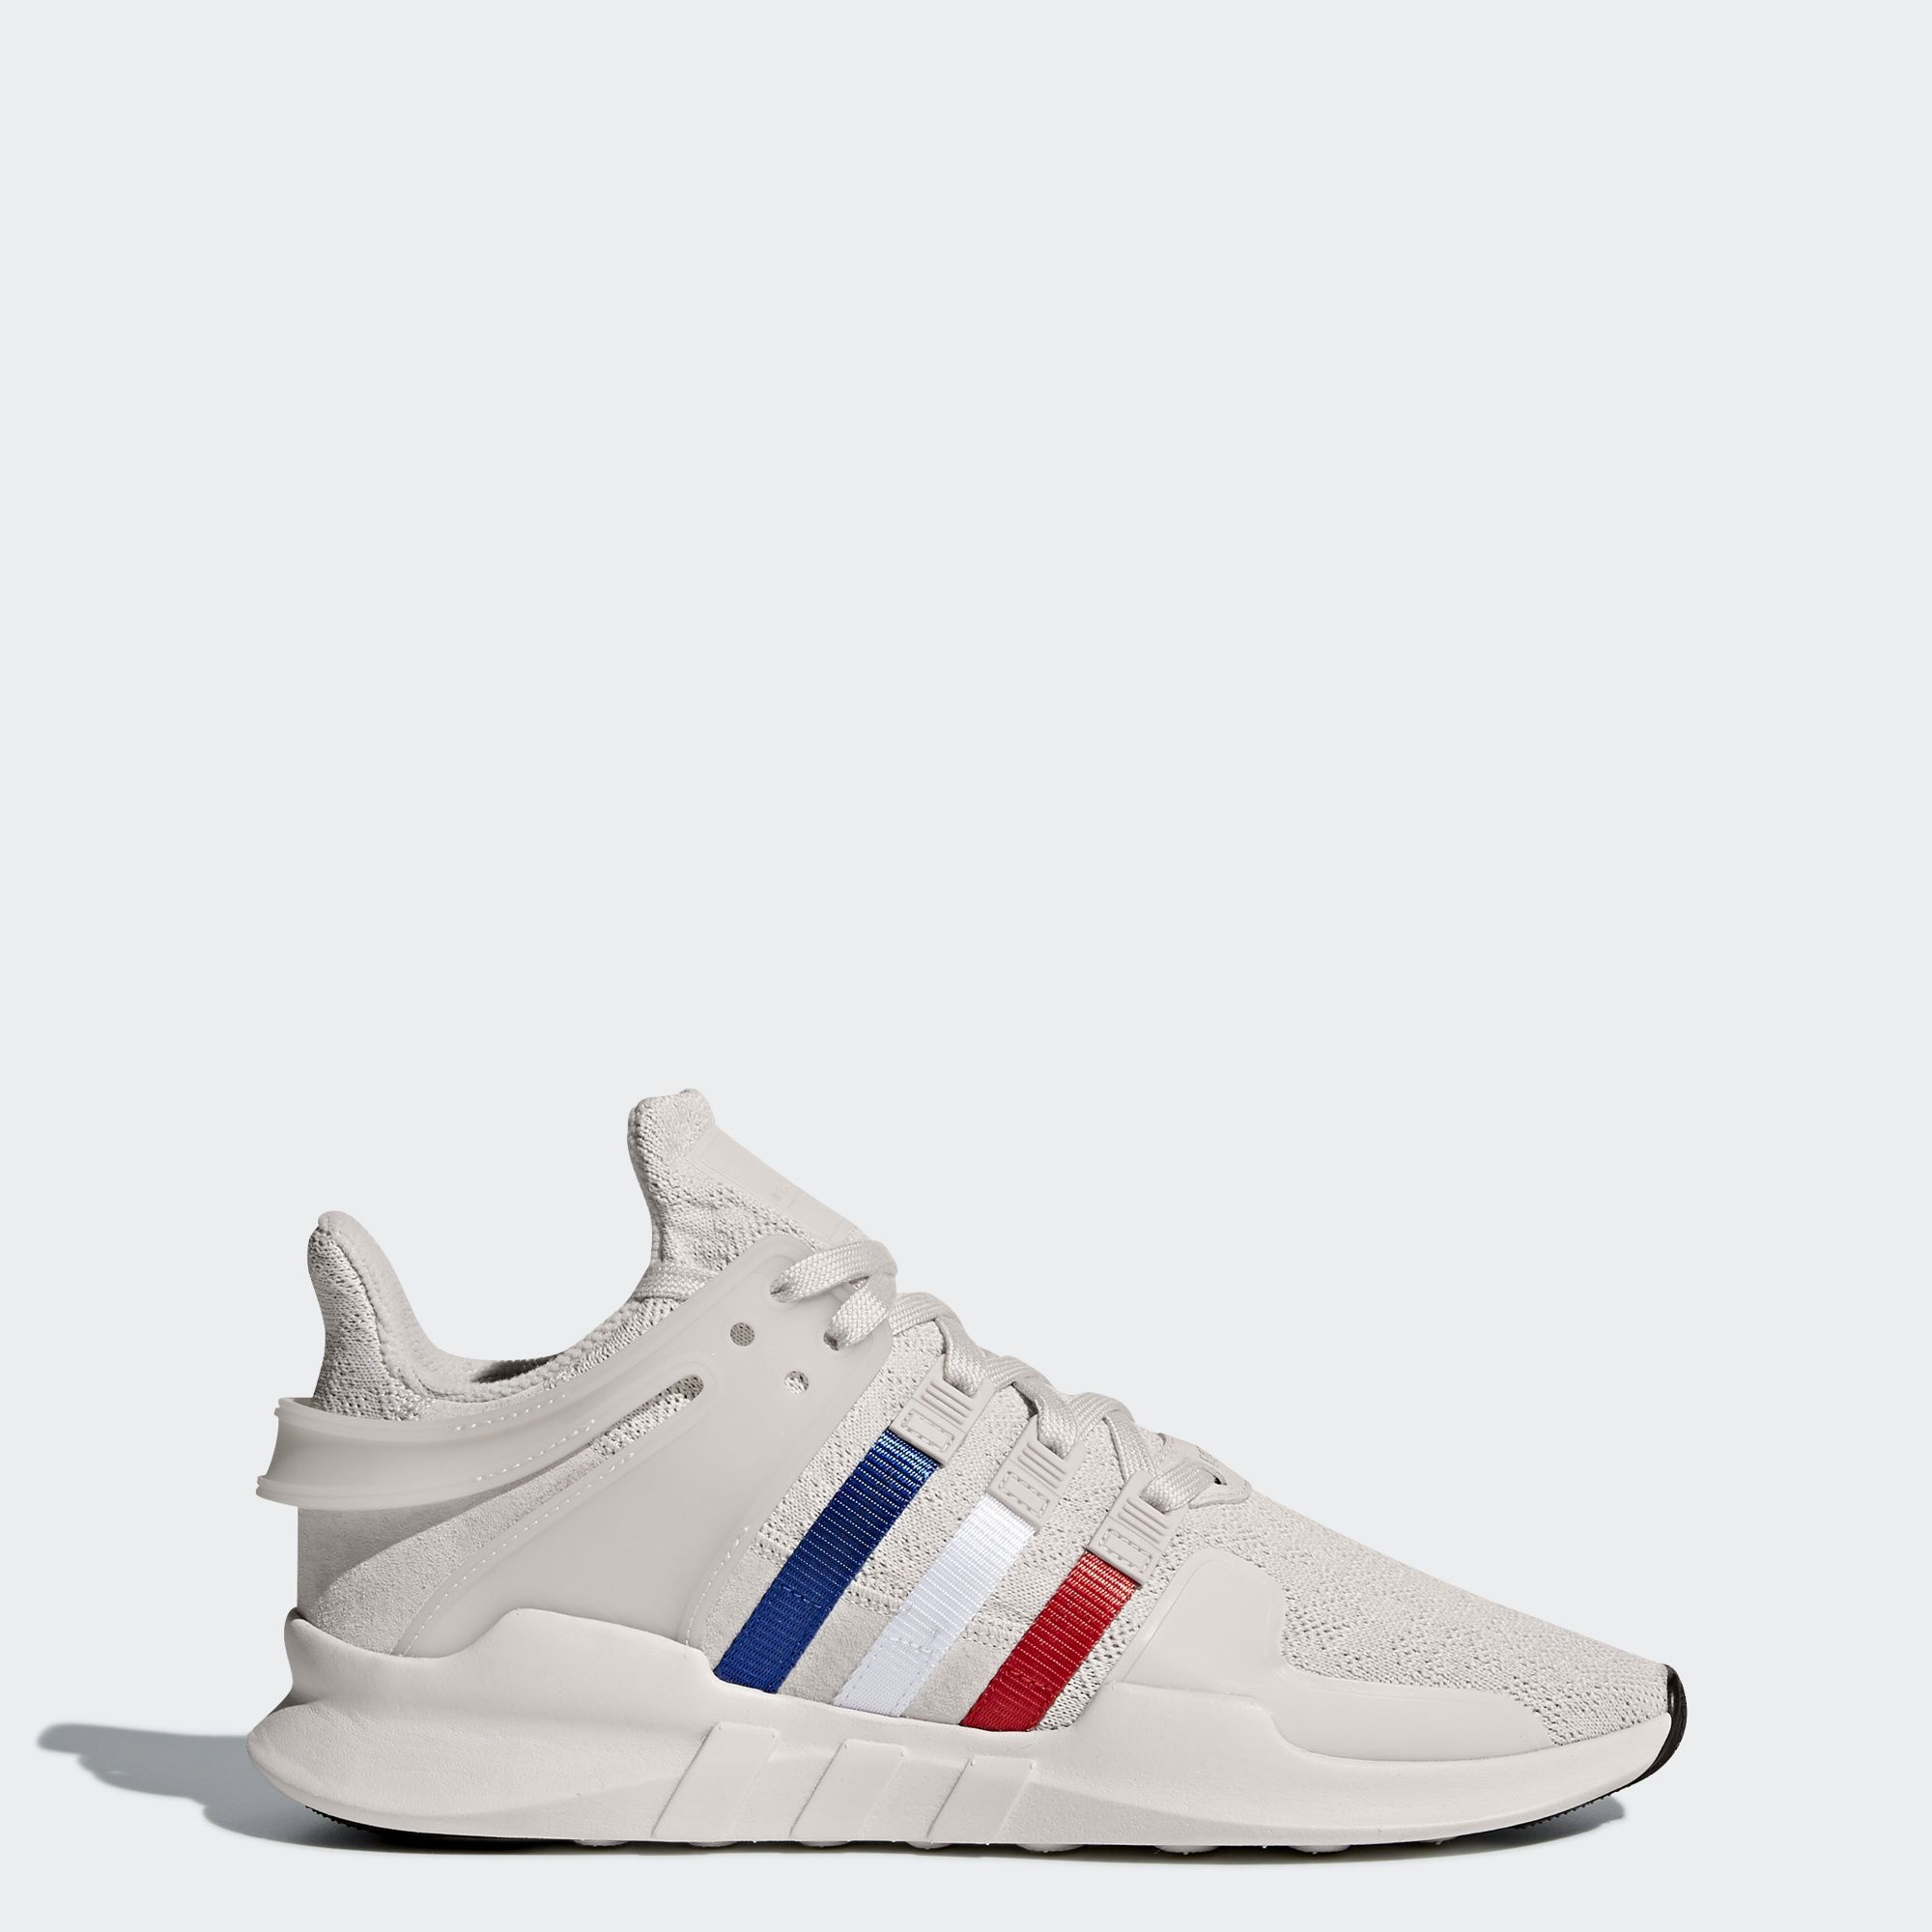 brand new ae185 a1668 adidas Originals EQT Support ADV sneakers are a great addition to any  rotation. Designed with comfort in mind, the bootie construction and TPU  technology ...